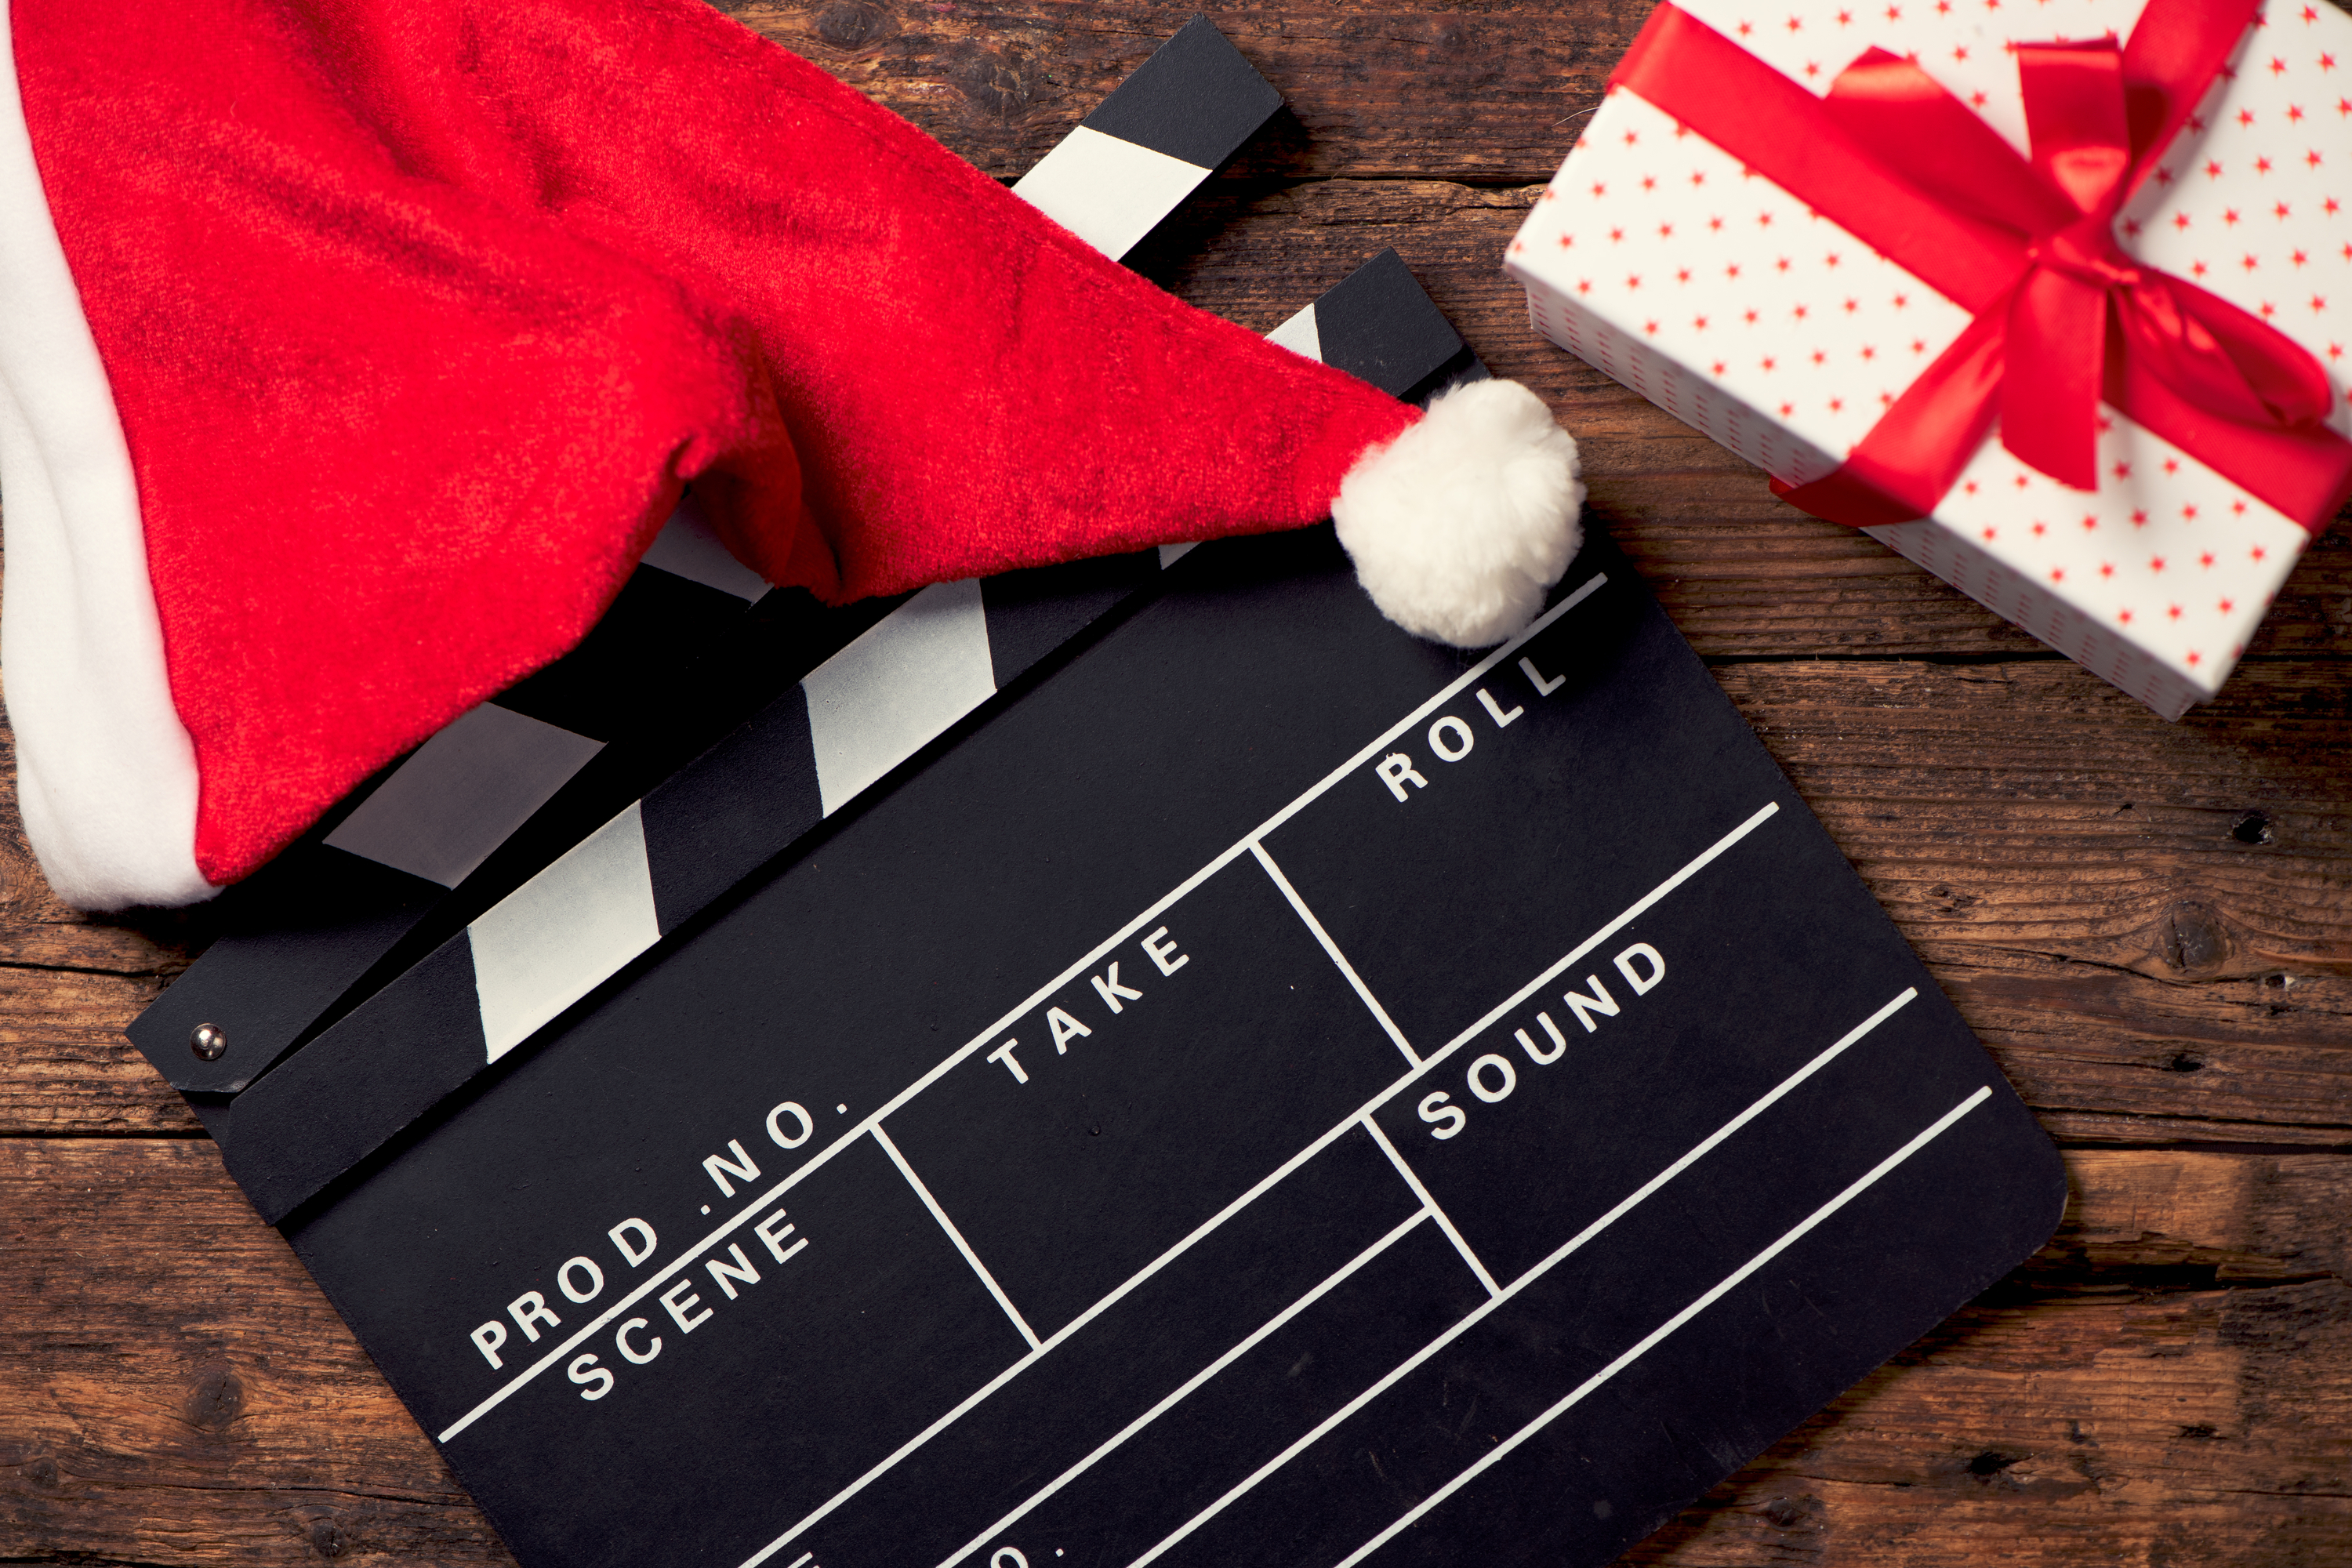 We all know that Hallmark Christmas movies are one of the best parts of Christmas. Here is a list of Hallmark Christmas movies to watch this holiday season!